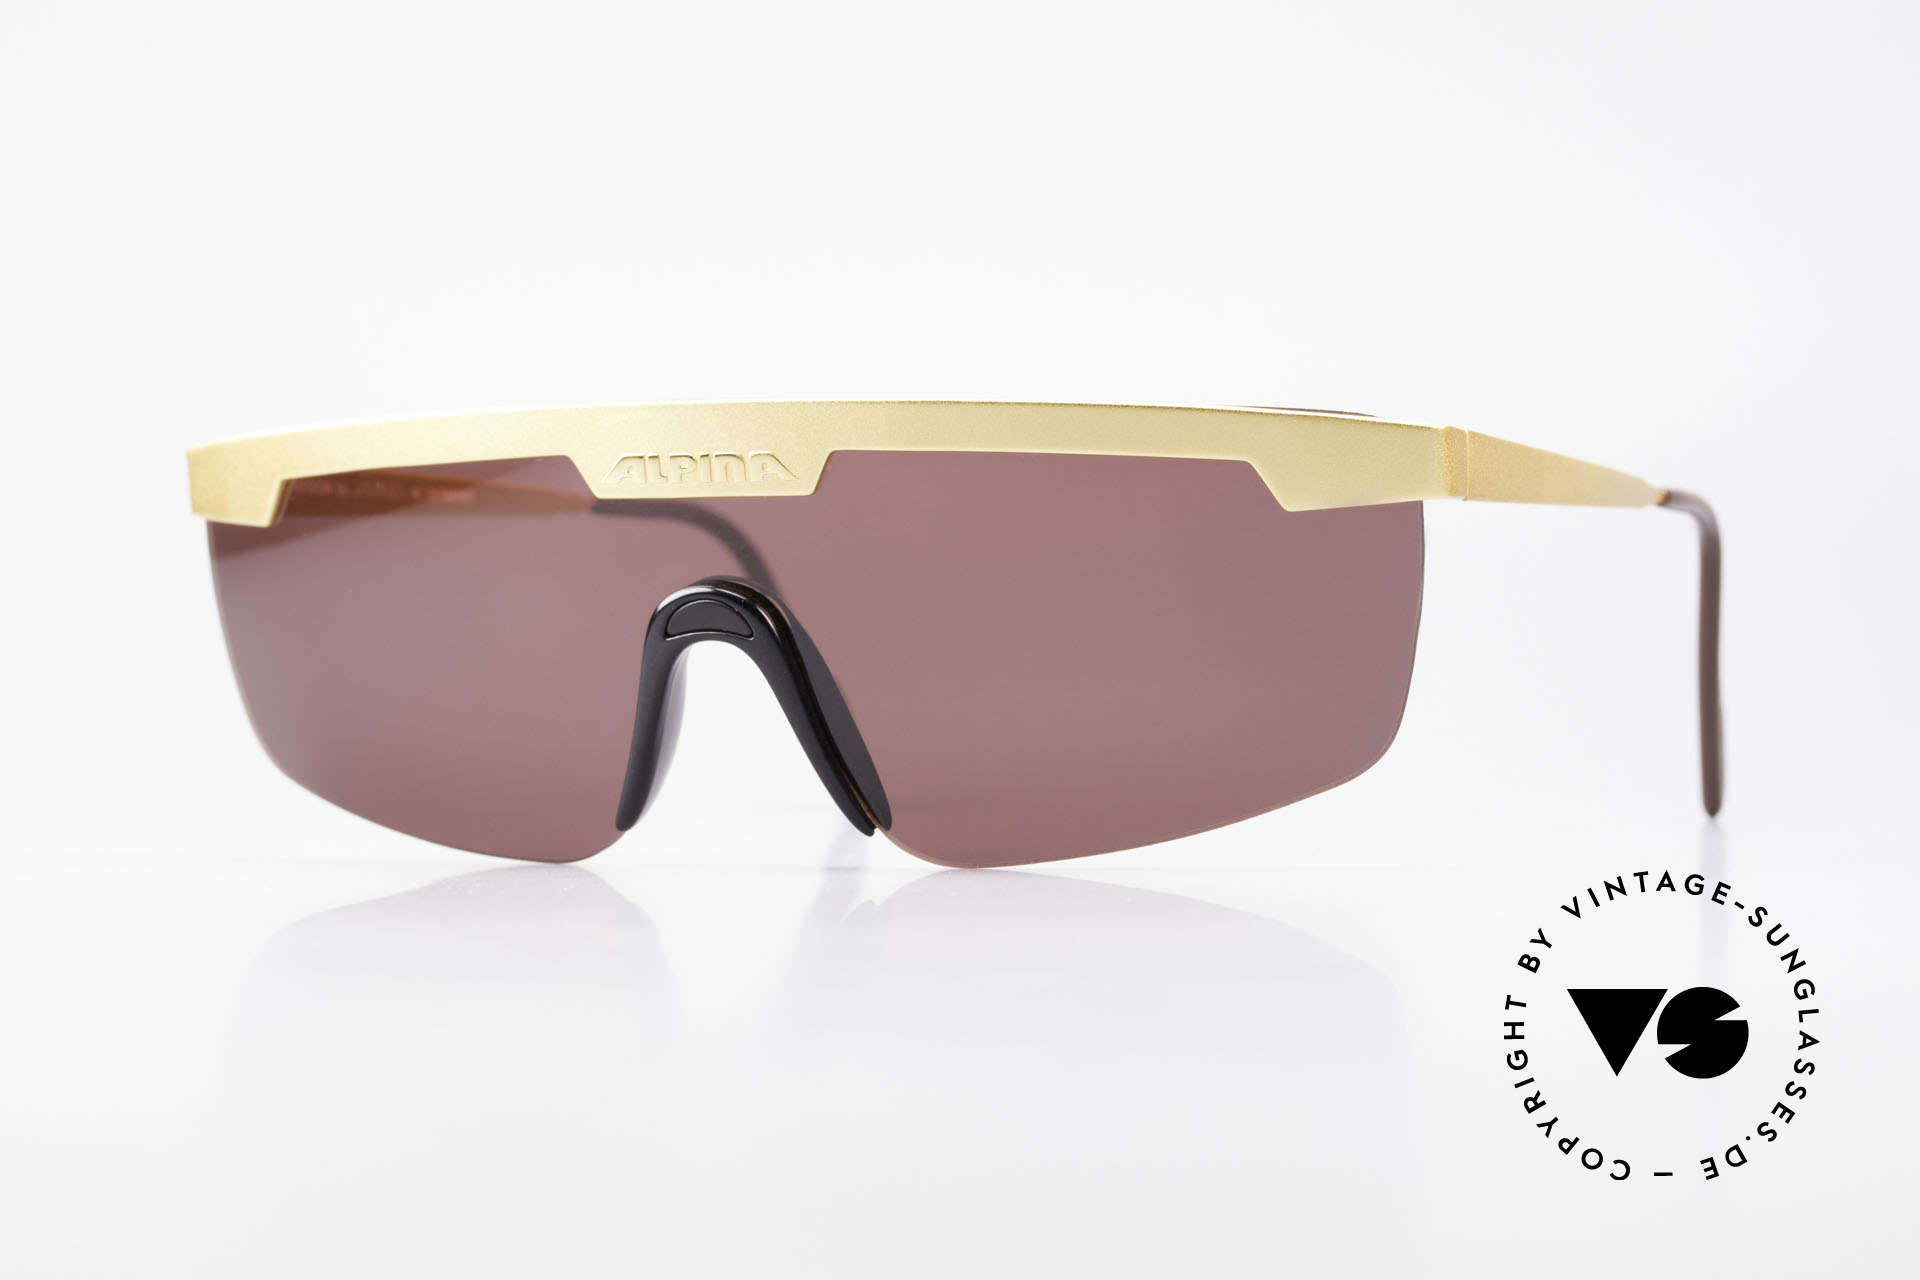 Alpina M57 Vintage Shades Panorama View, futuristic, but old designer shades by Alpina, Made for Men and Women